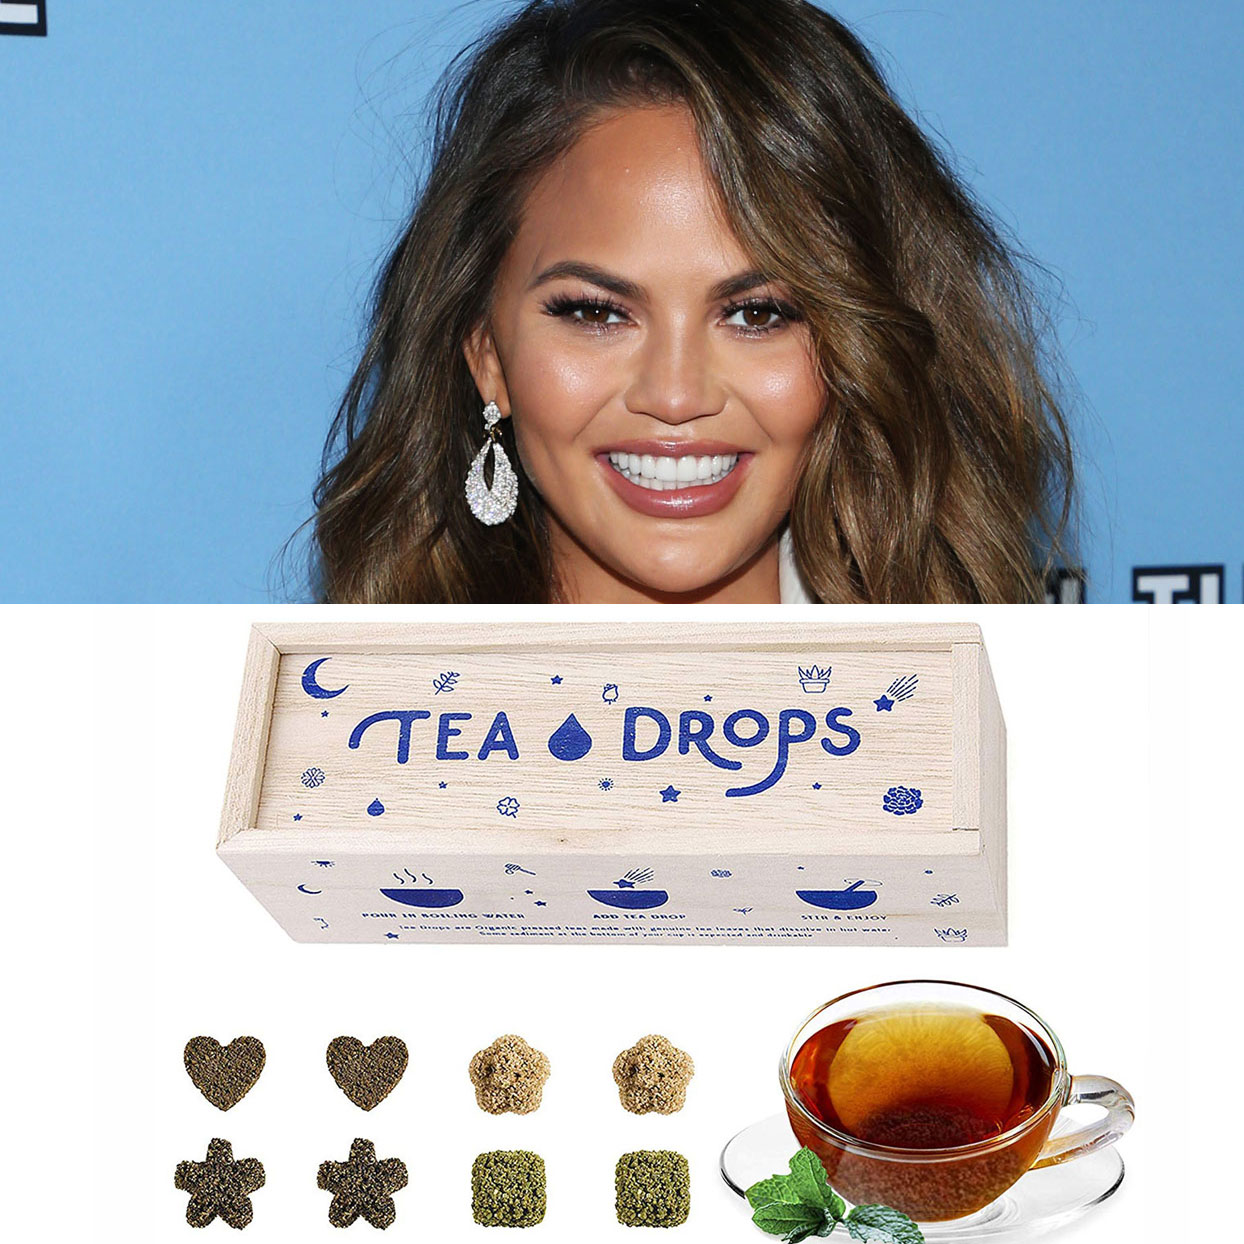 Chrissy Teigen 'Can't Stop Telling Everyone' About These Cute, Dissolvable Tea Drops That Are Best-Sellers on Amazon